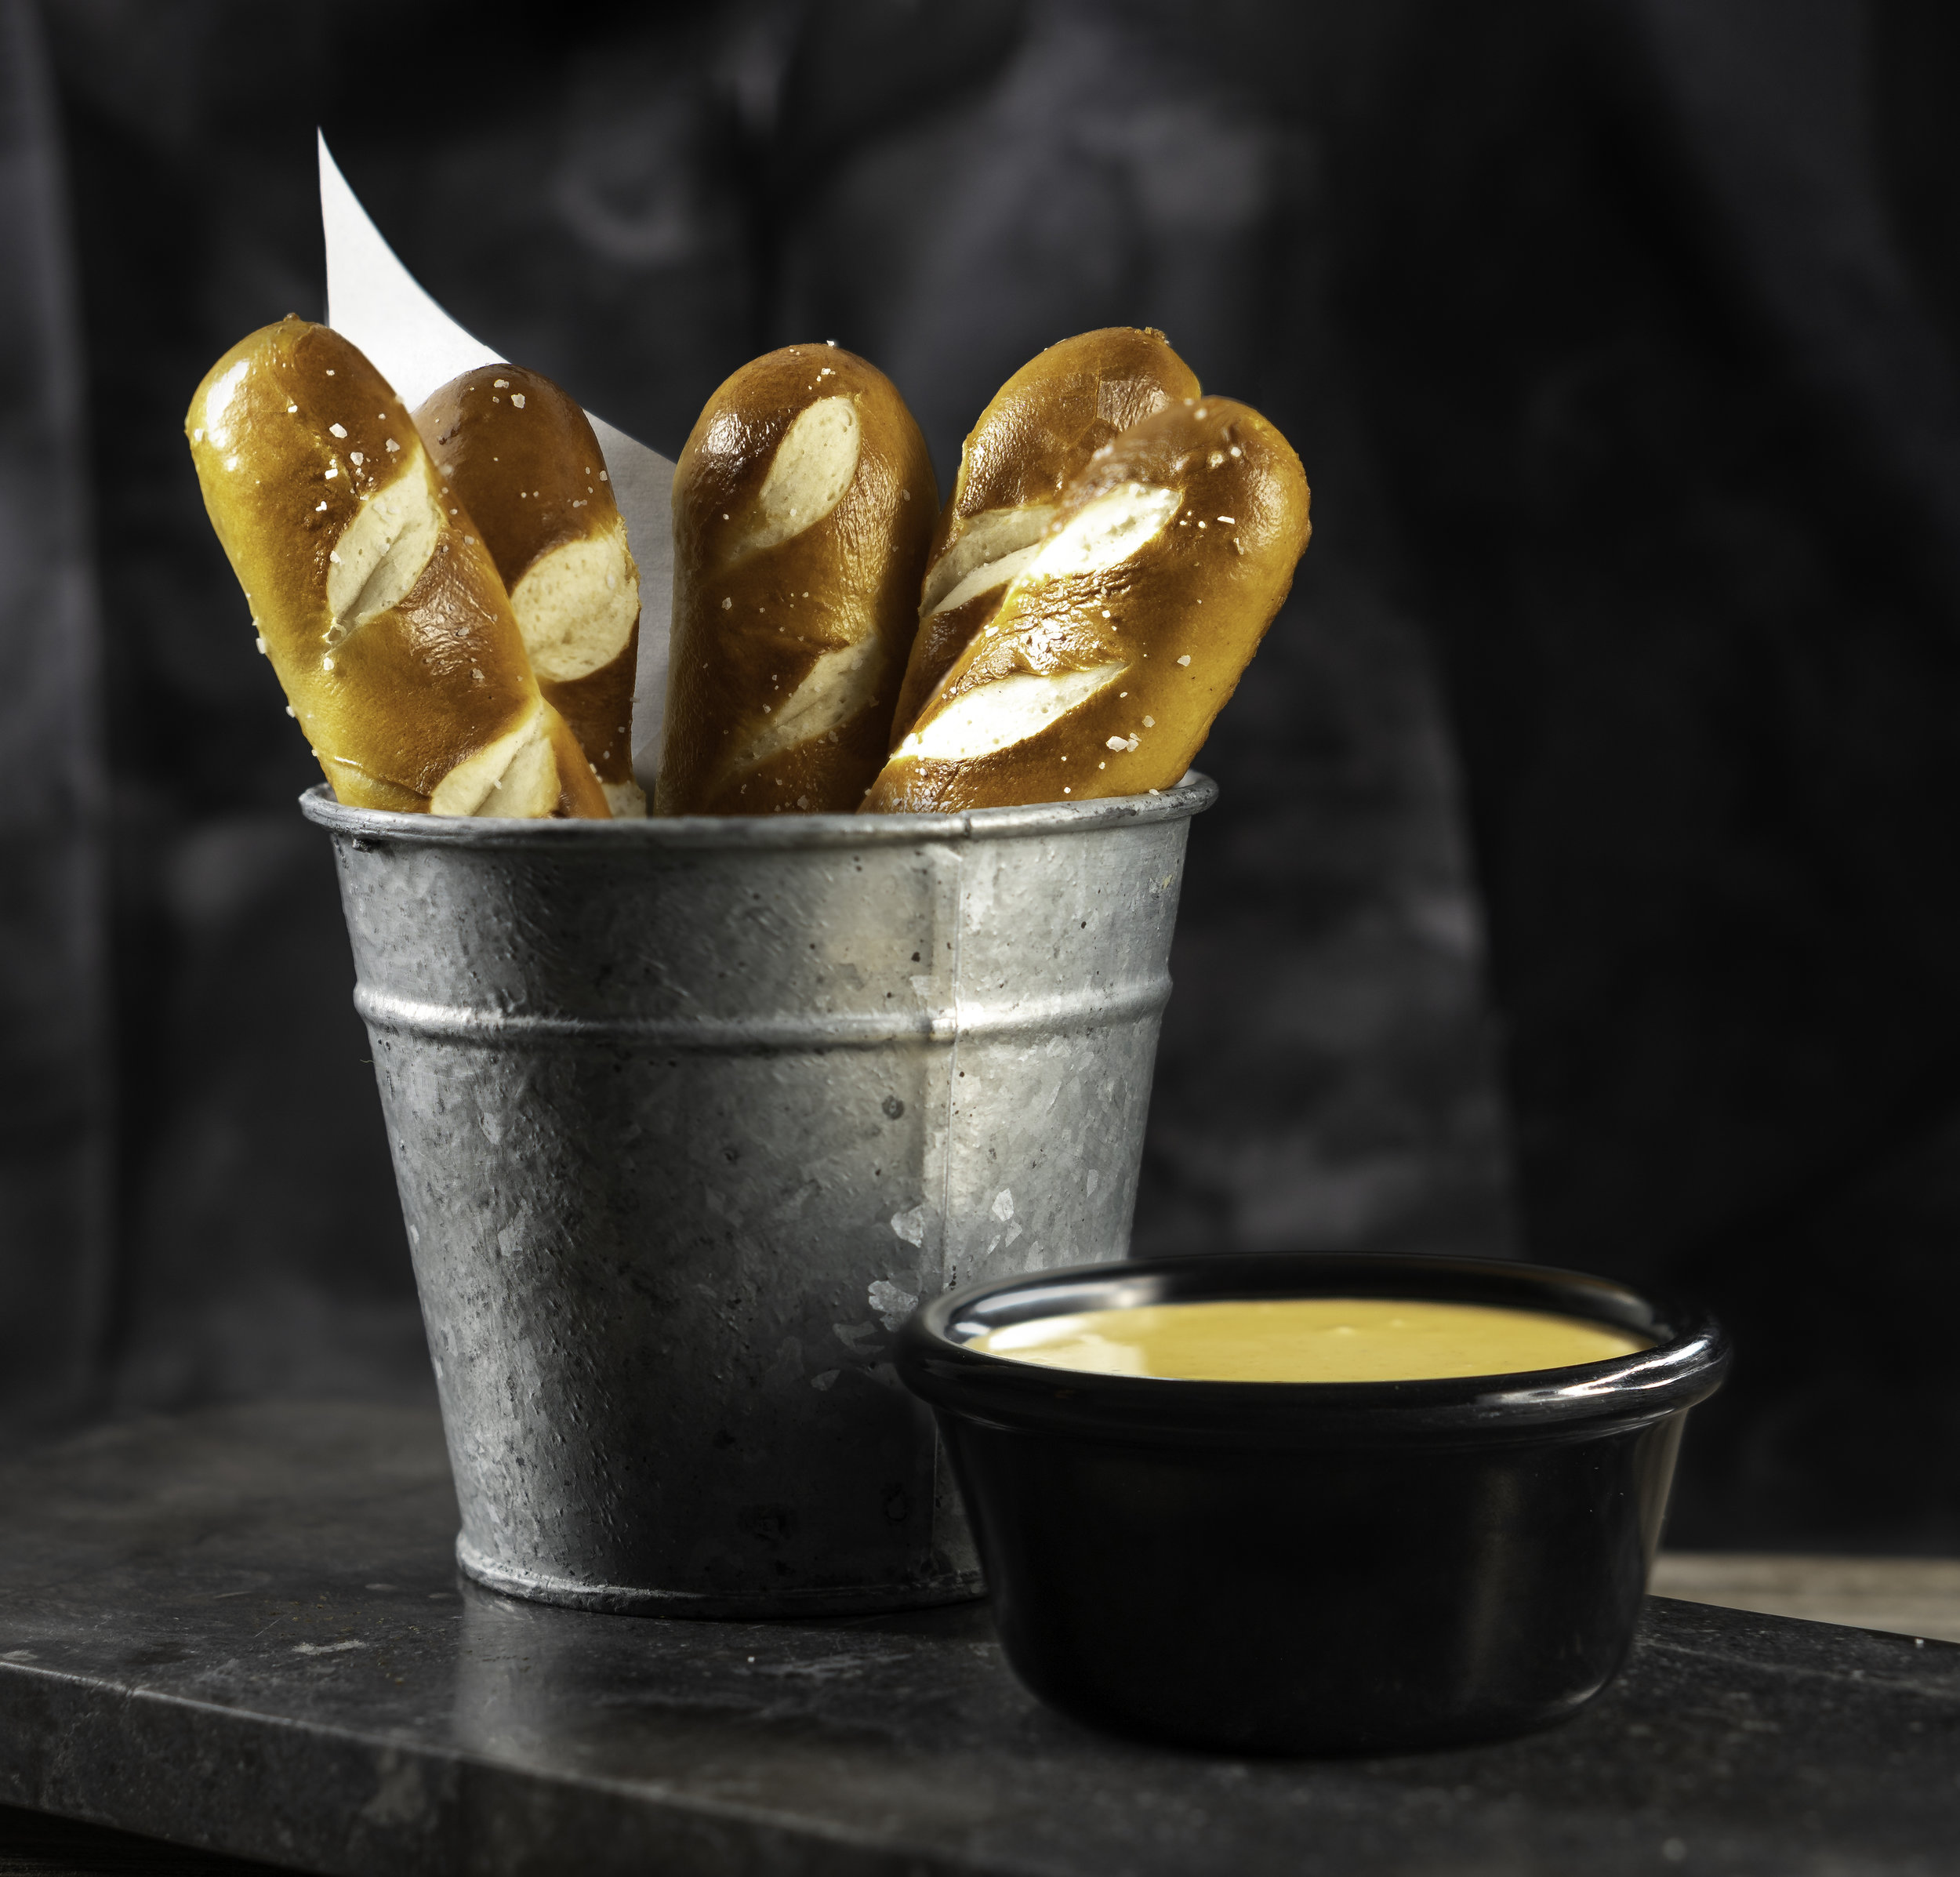 PRETZEL DIPPERS - 5 Warm salted pretzel sticks with creamy cheese dipping sauce